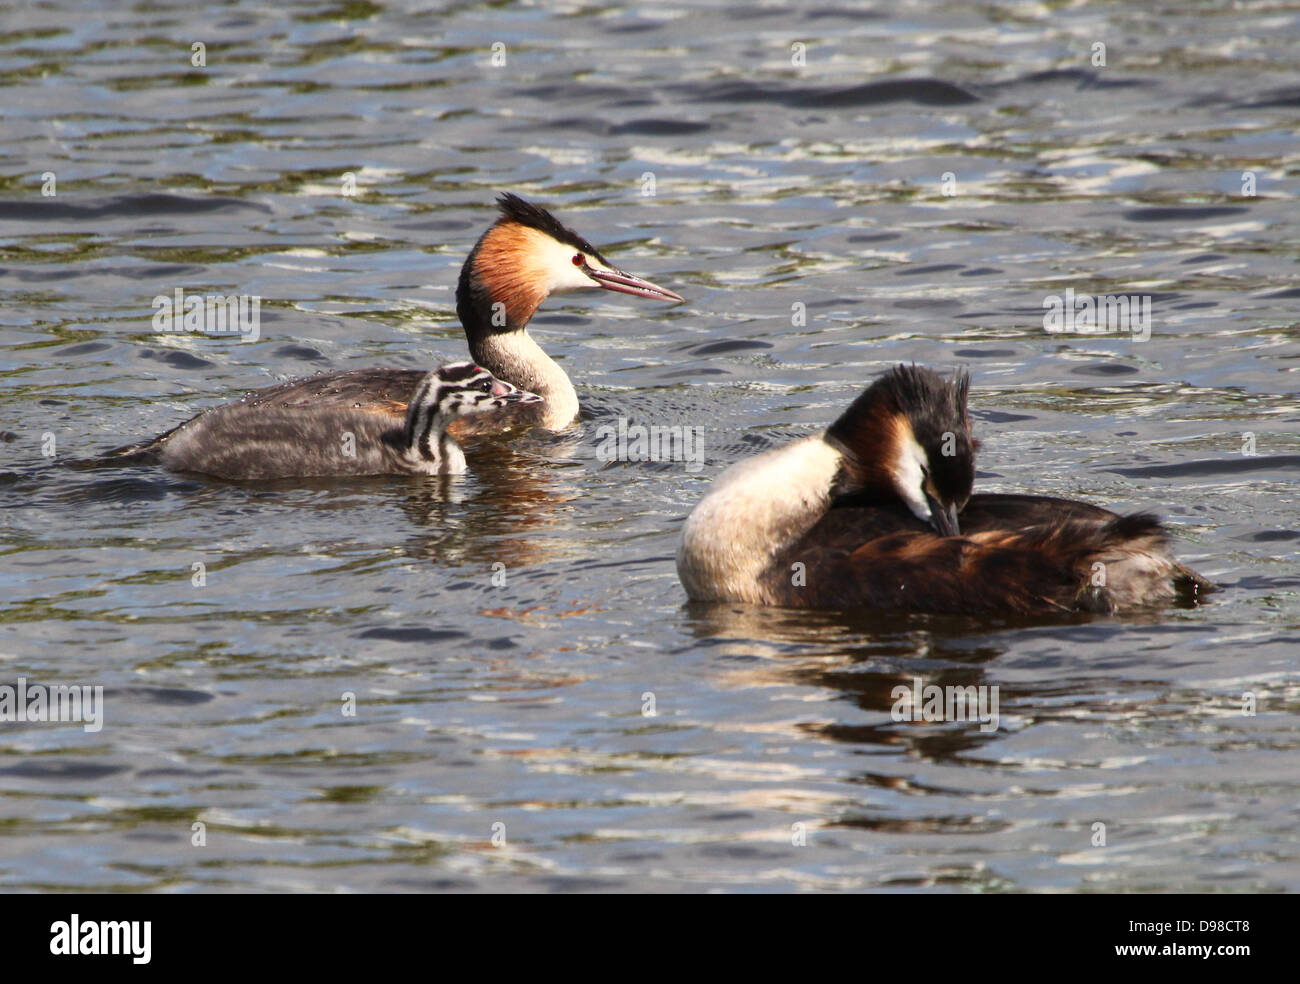 Great Crested Grebes (Podiceps cristatus) taking care of their youngsters (over 30 images in series) - Stock Image